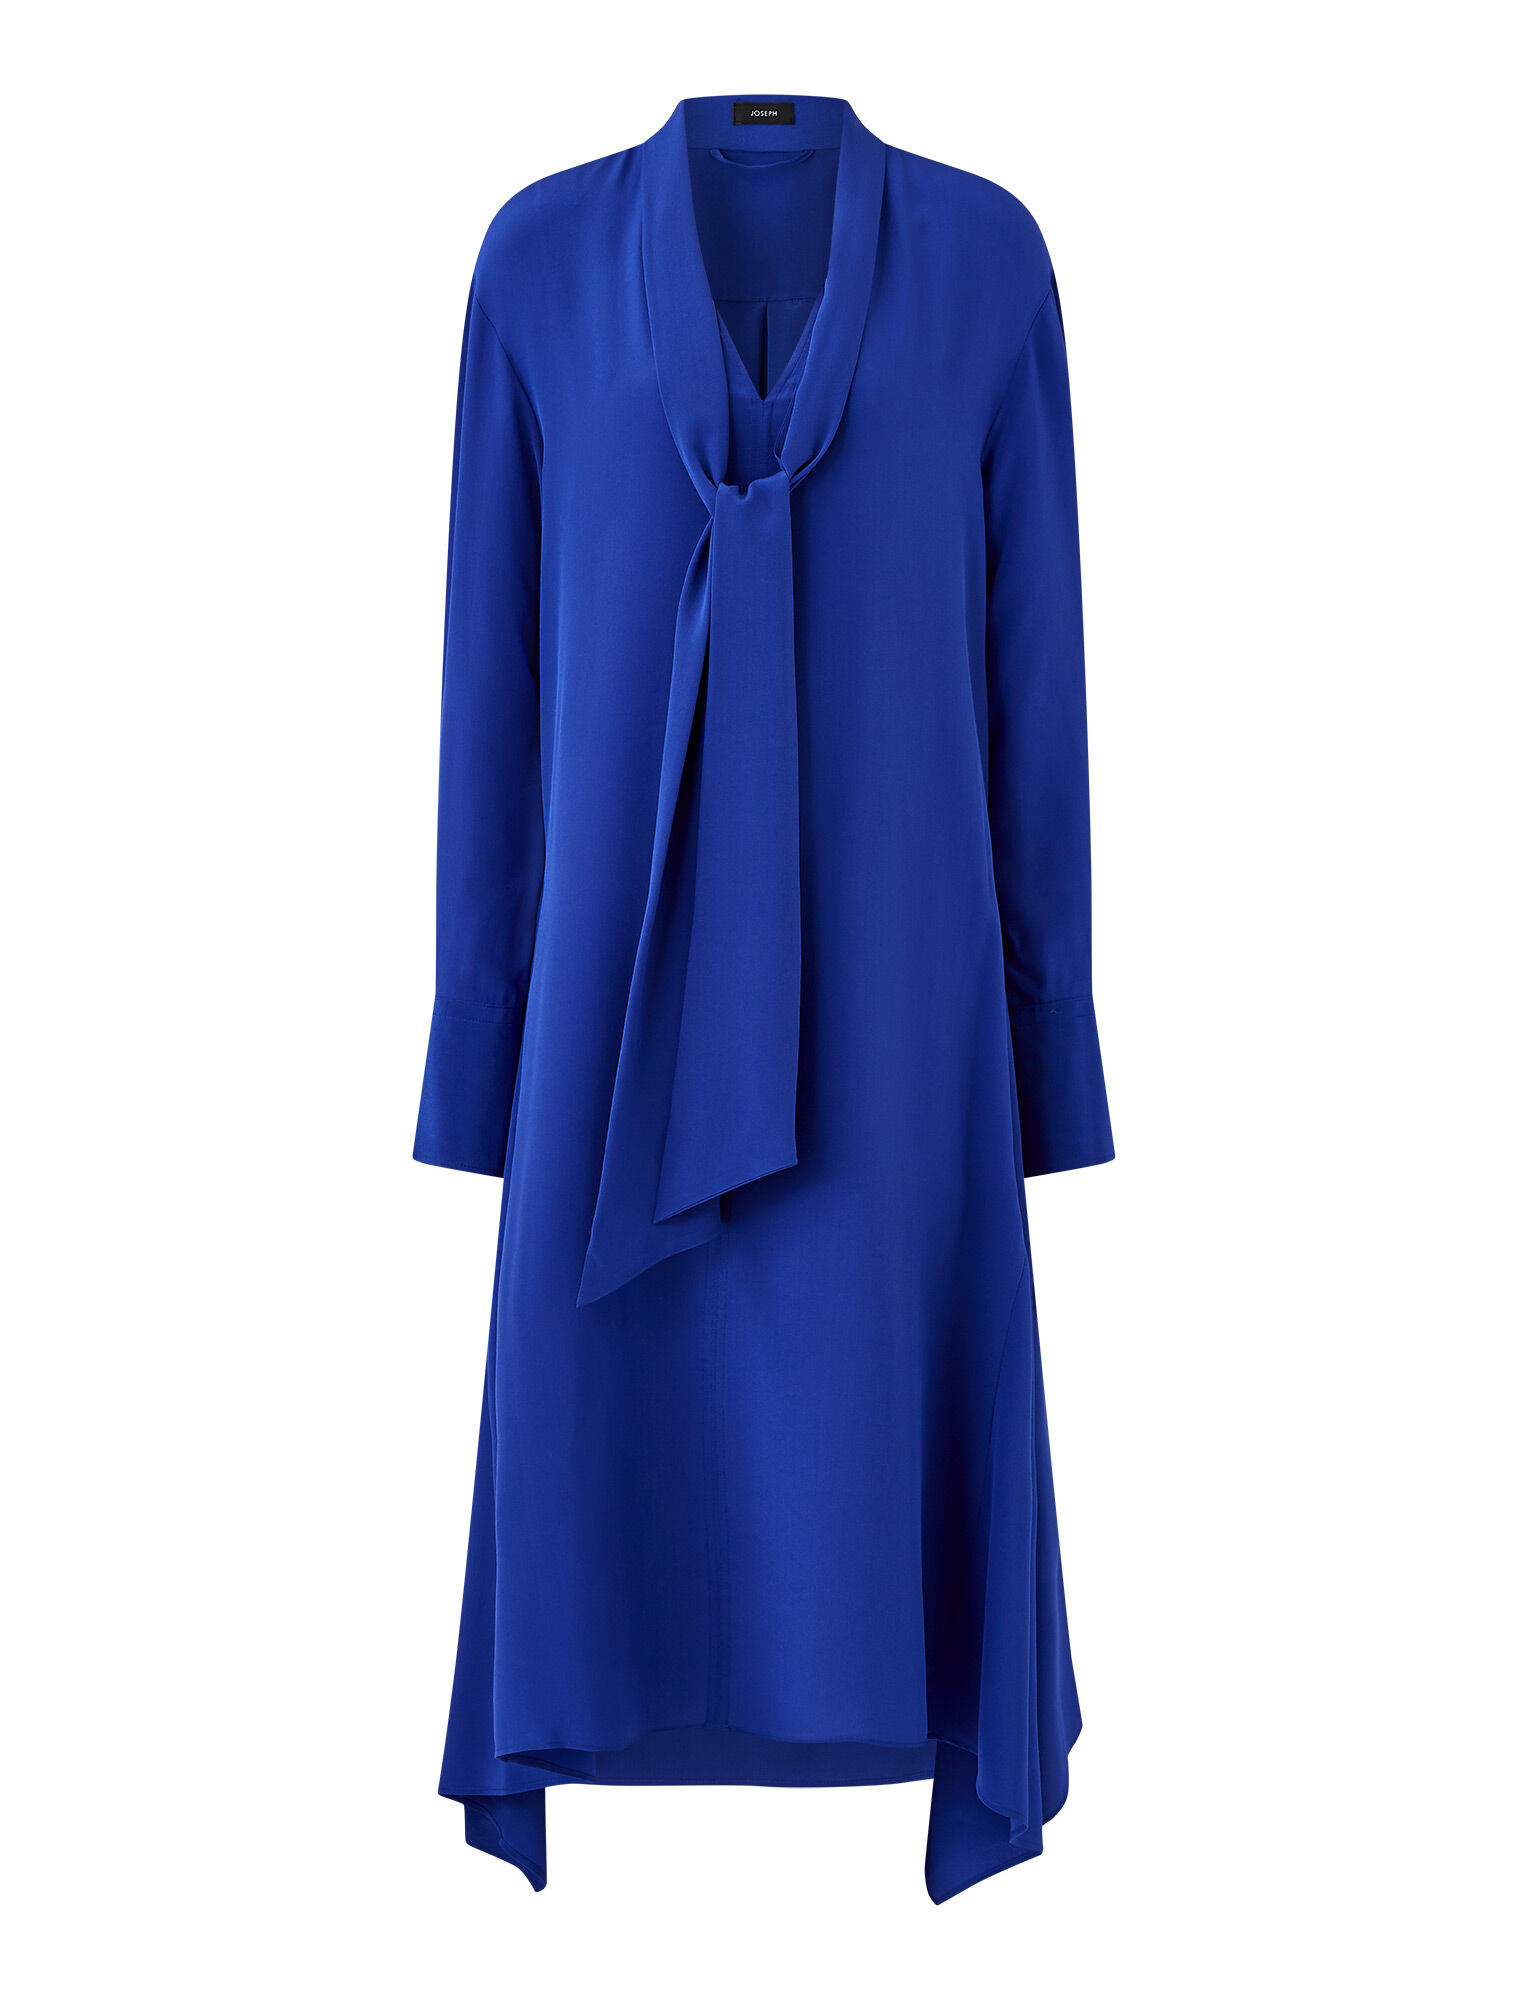 Joseph, Alisson Crepe De Chine Dress, in KLEIN